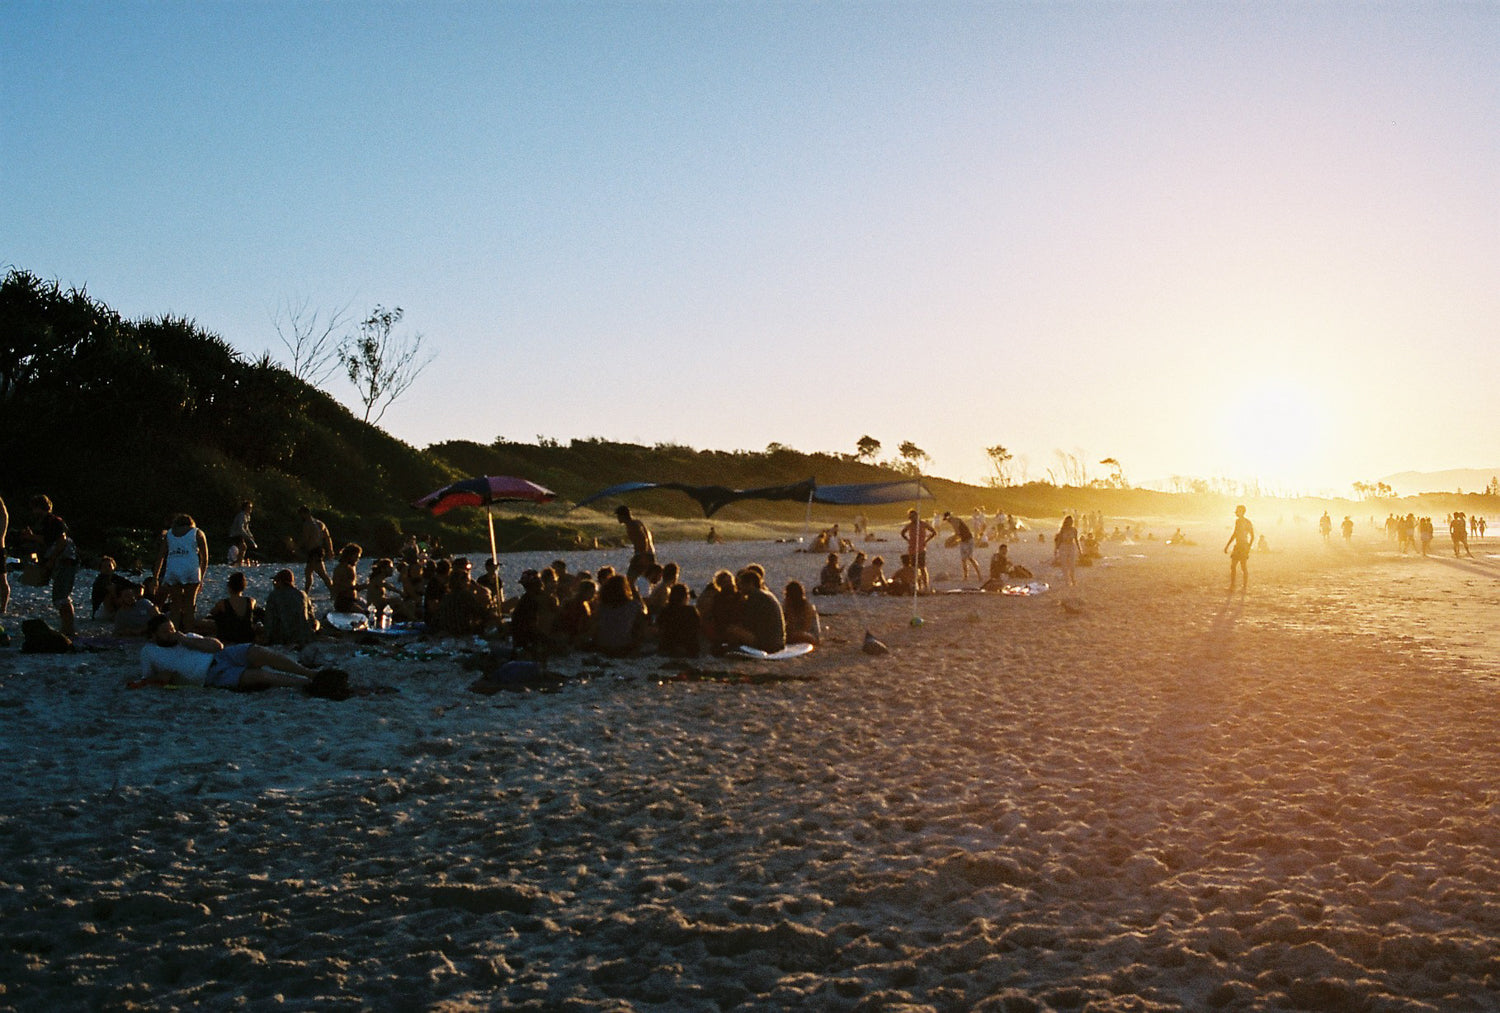 People sit in groups on the beach at sunset in Byron bay. The sun is low & the beach & blue water looks warm.  People are walking in the distance.